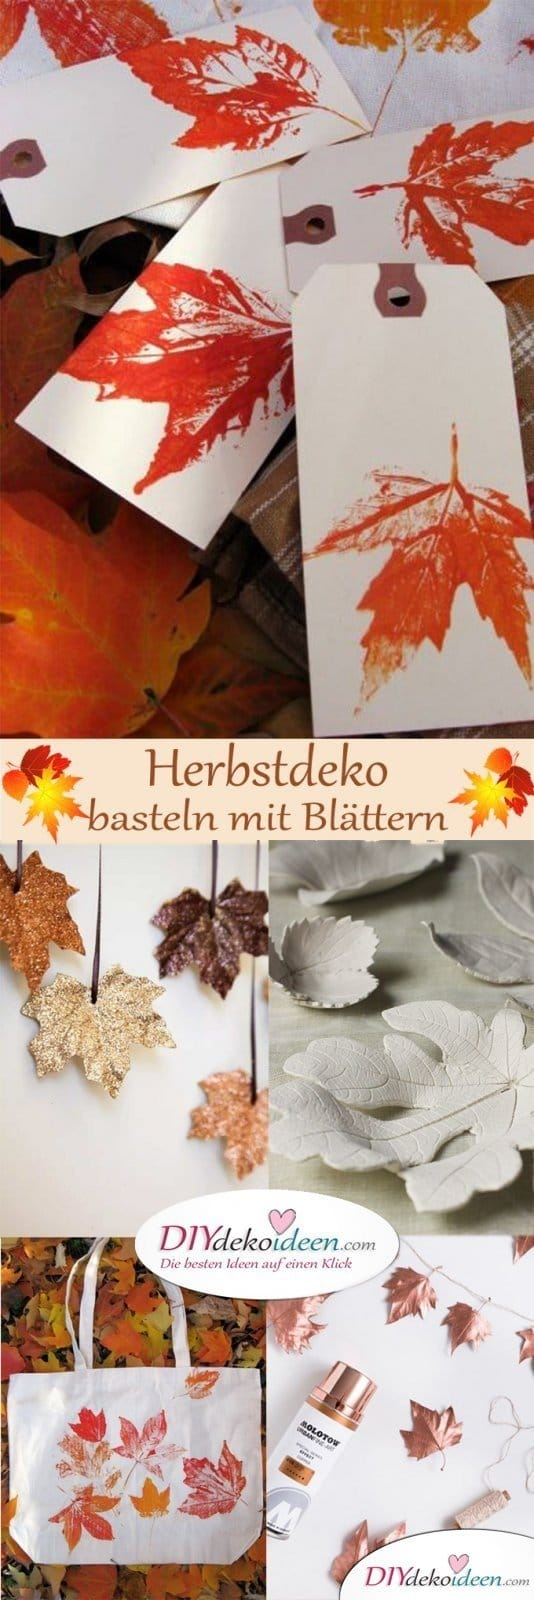 herbstdeko basteln mit bl ttern die sch nsten diy bastelideen. Black Bedroom Furniture Sets. Home Design Ideas